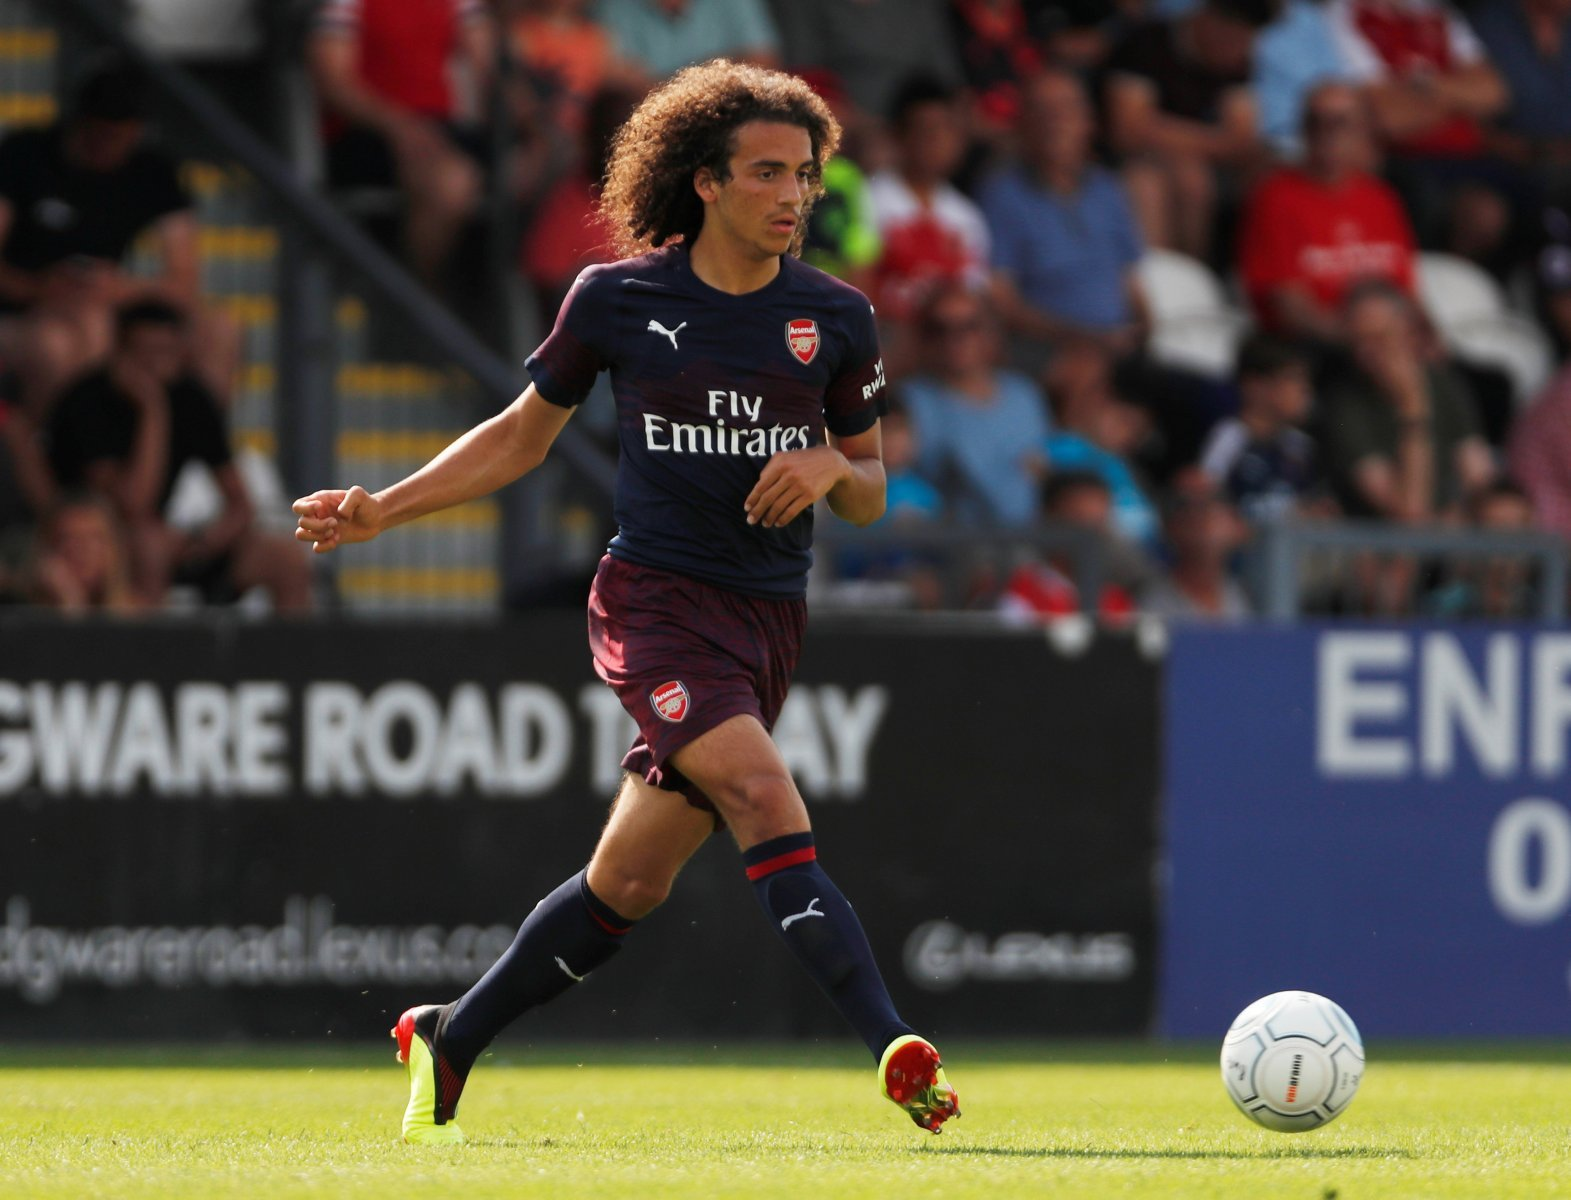 Arsenal fans on social media have likened Guendouzi to Gullit following Atletico friendly